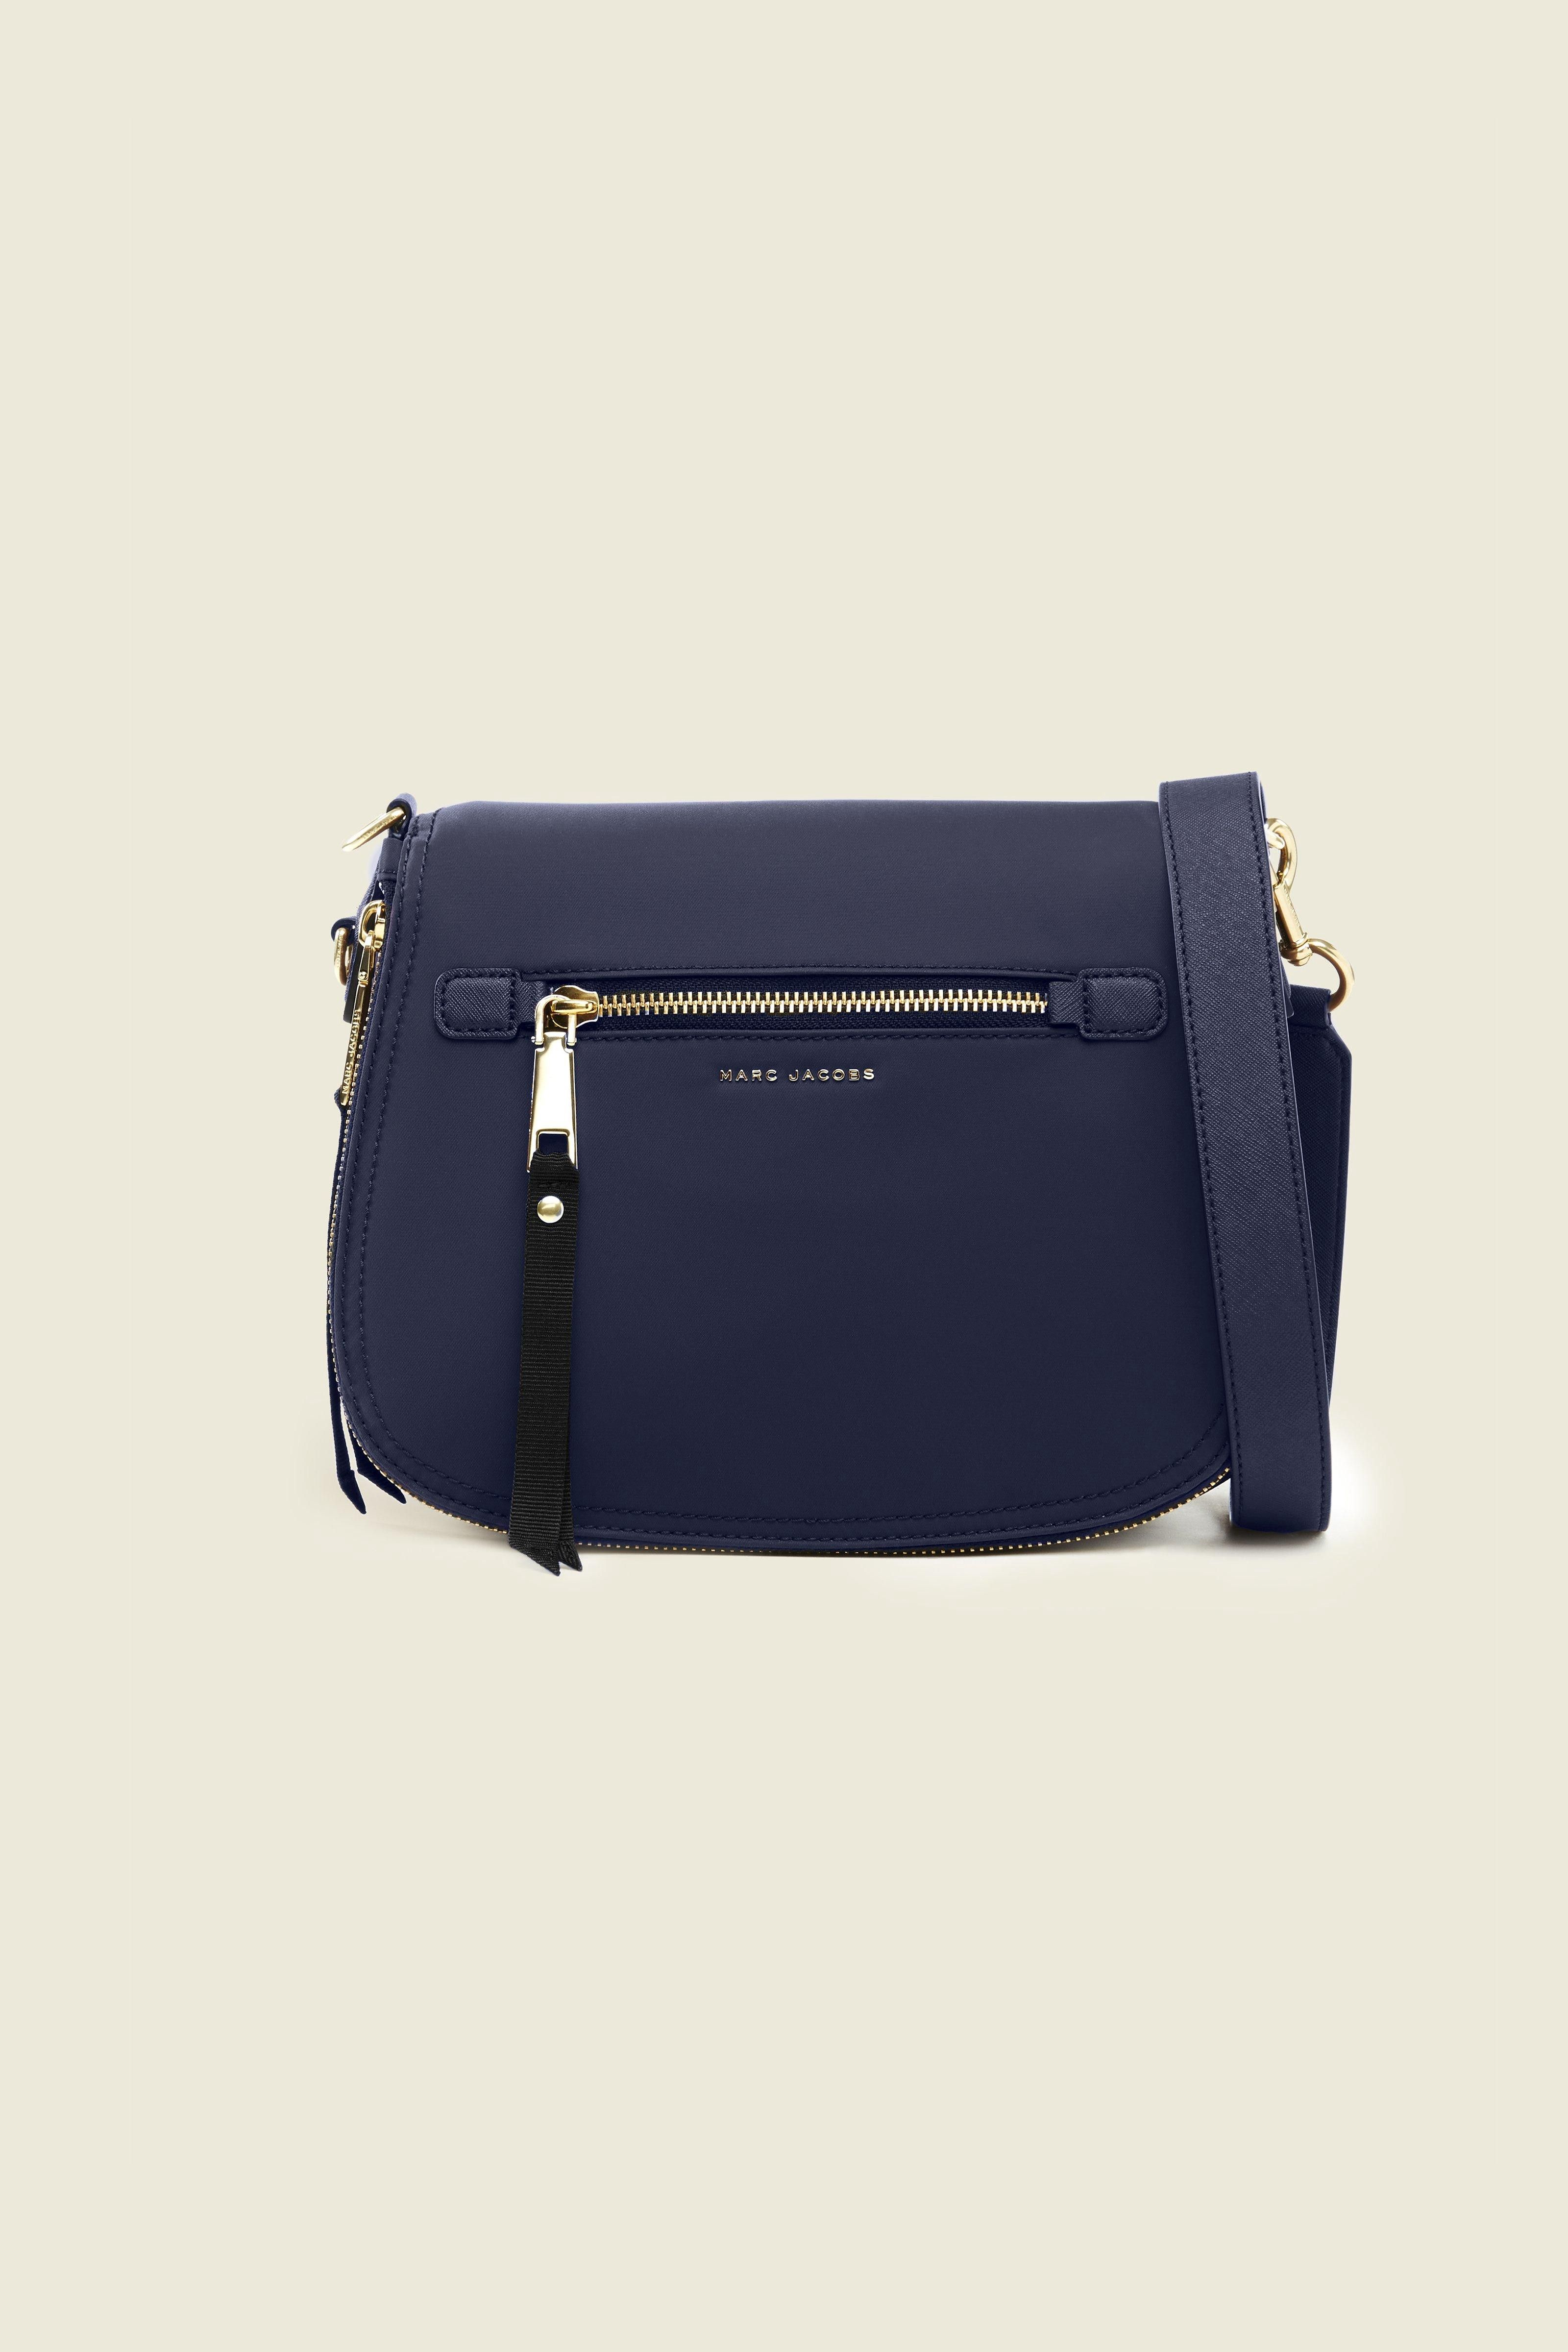 877149d44f91f MARC JACOBS Trooper Small Nomad Saddle.  marcjacobs  bags  shoulder bags   nylon